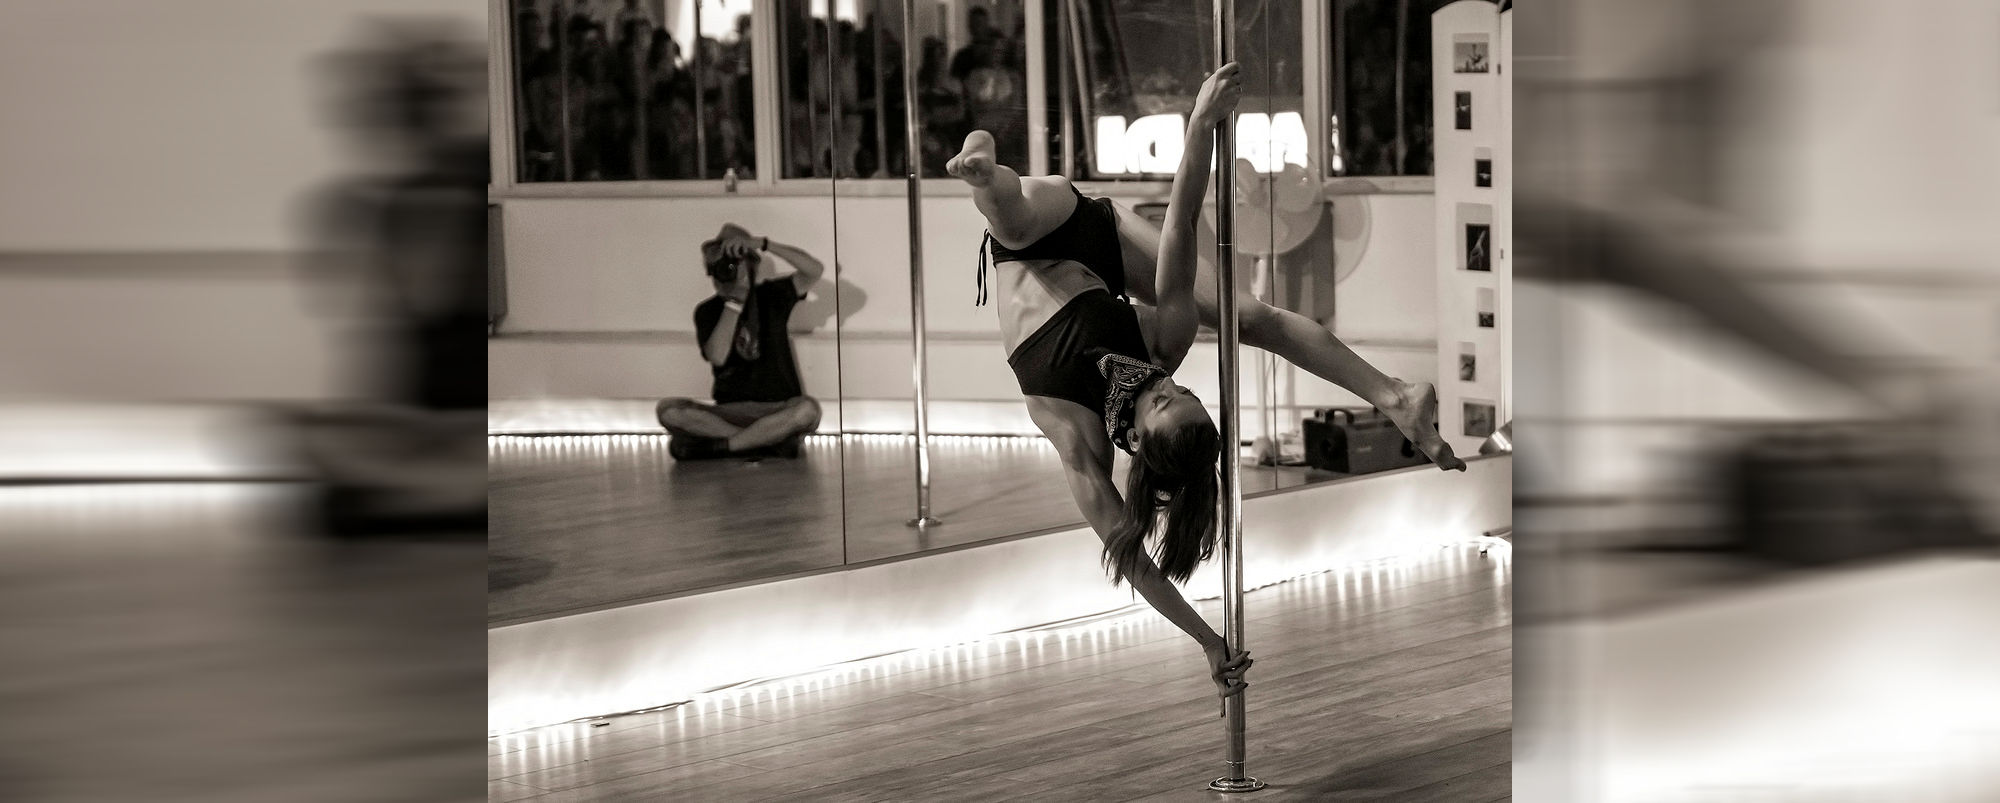 Pole Dancing Workout: 6 reasons you should give it a go